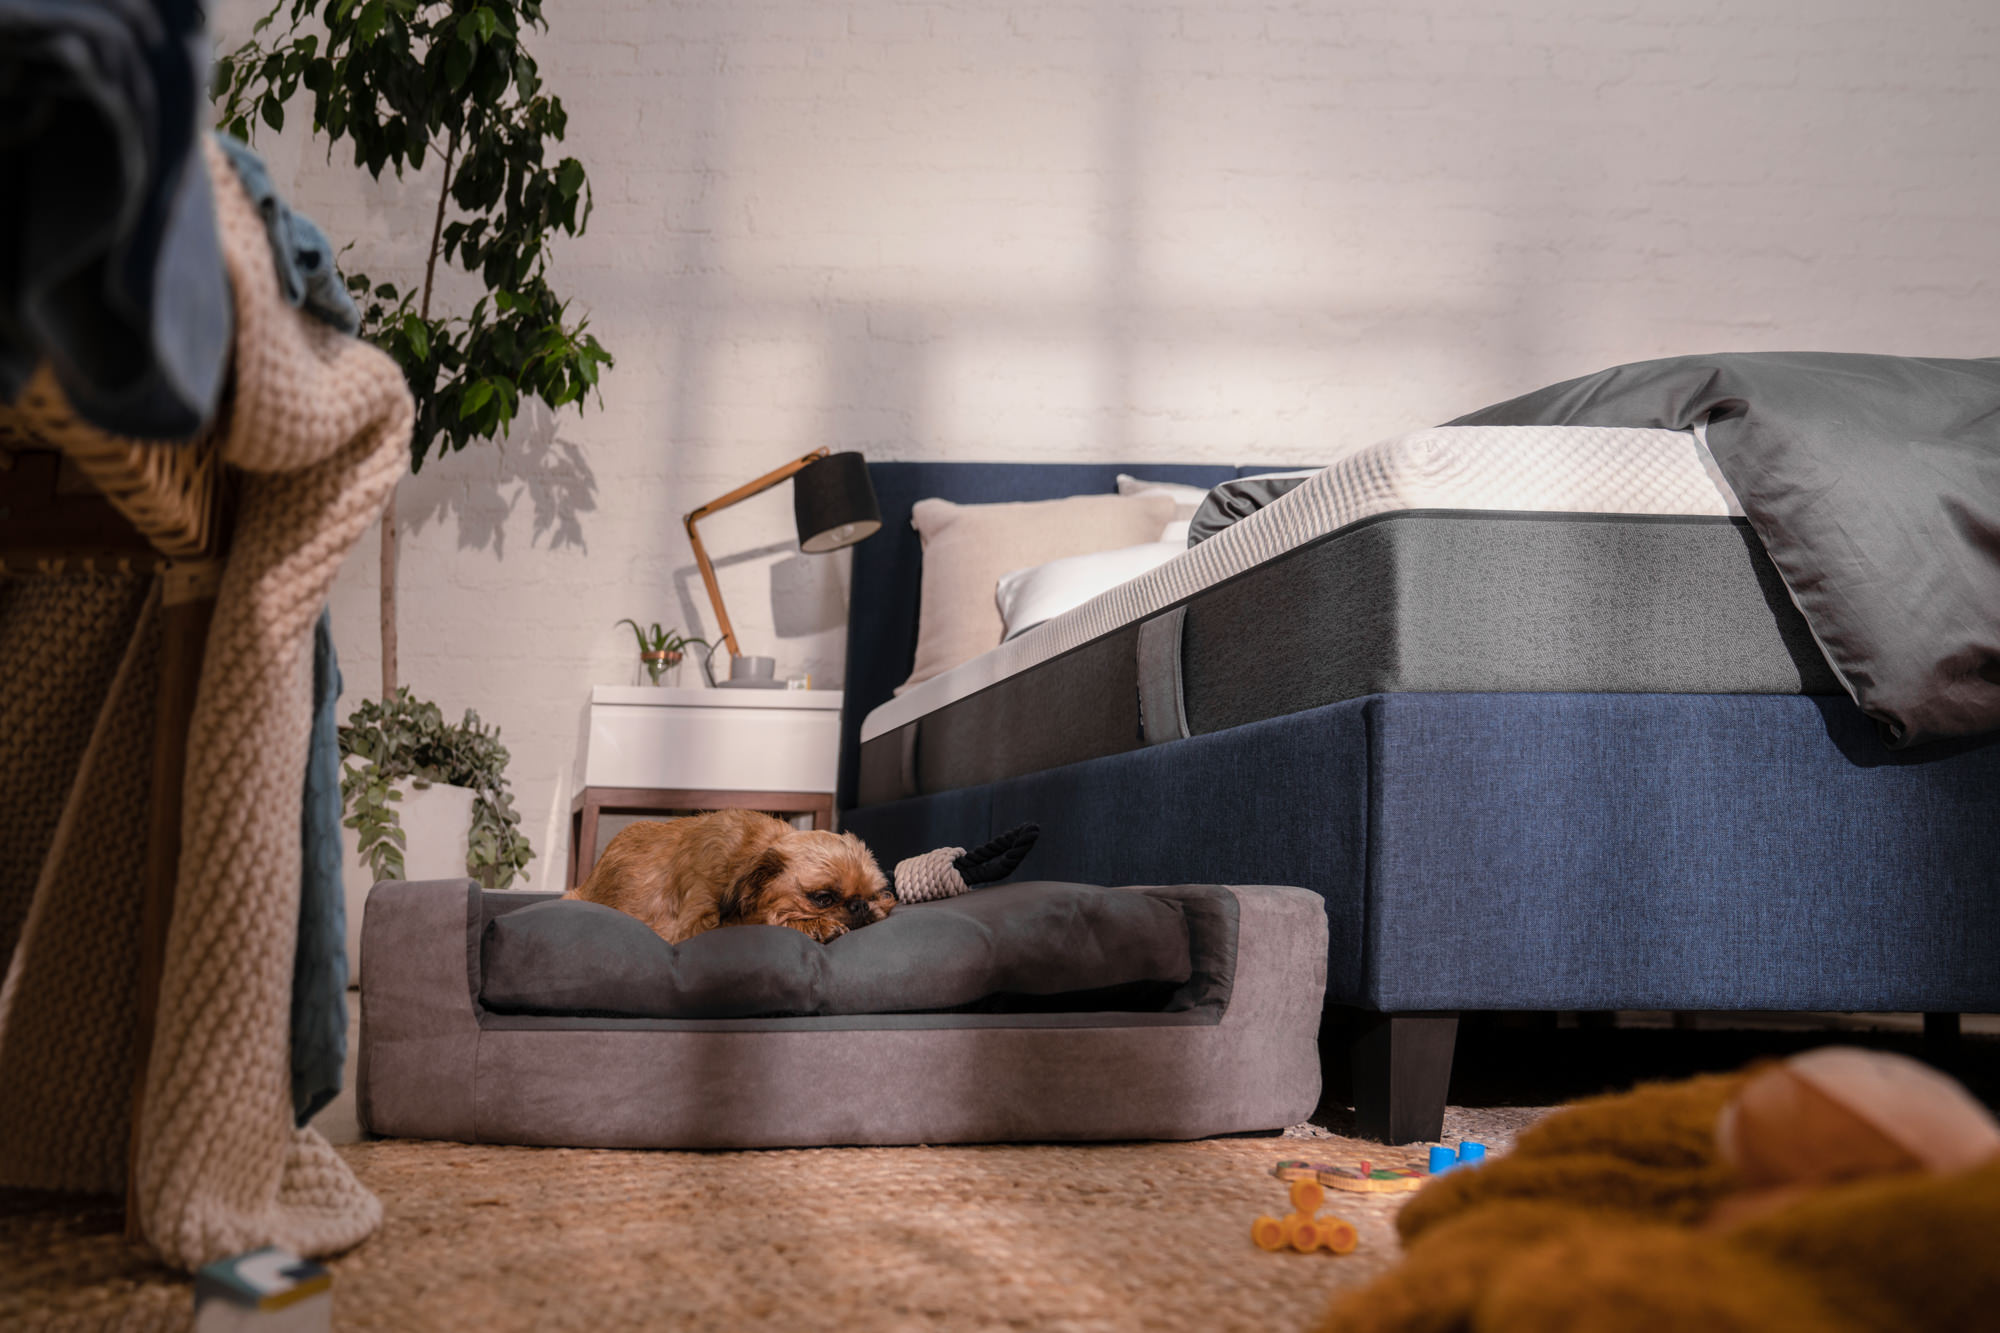 Image of a dog sleeping in its Emma Dog Bed for the Emma Matratze Content Library.